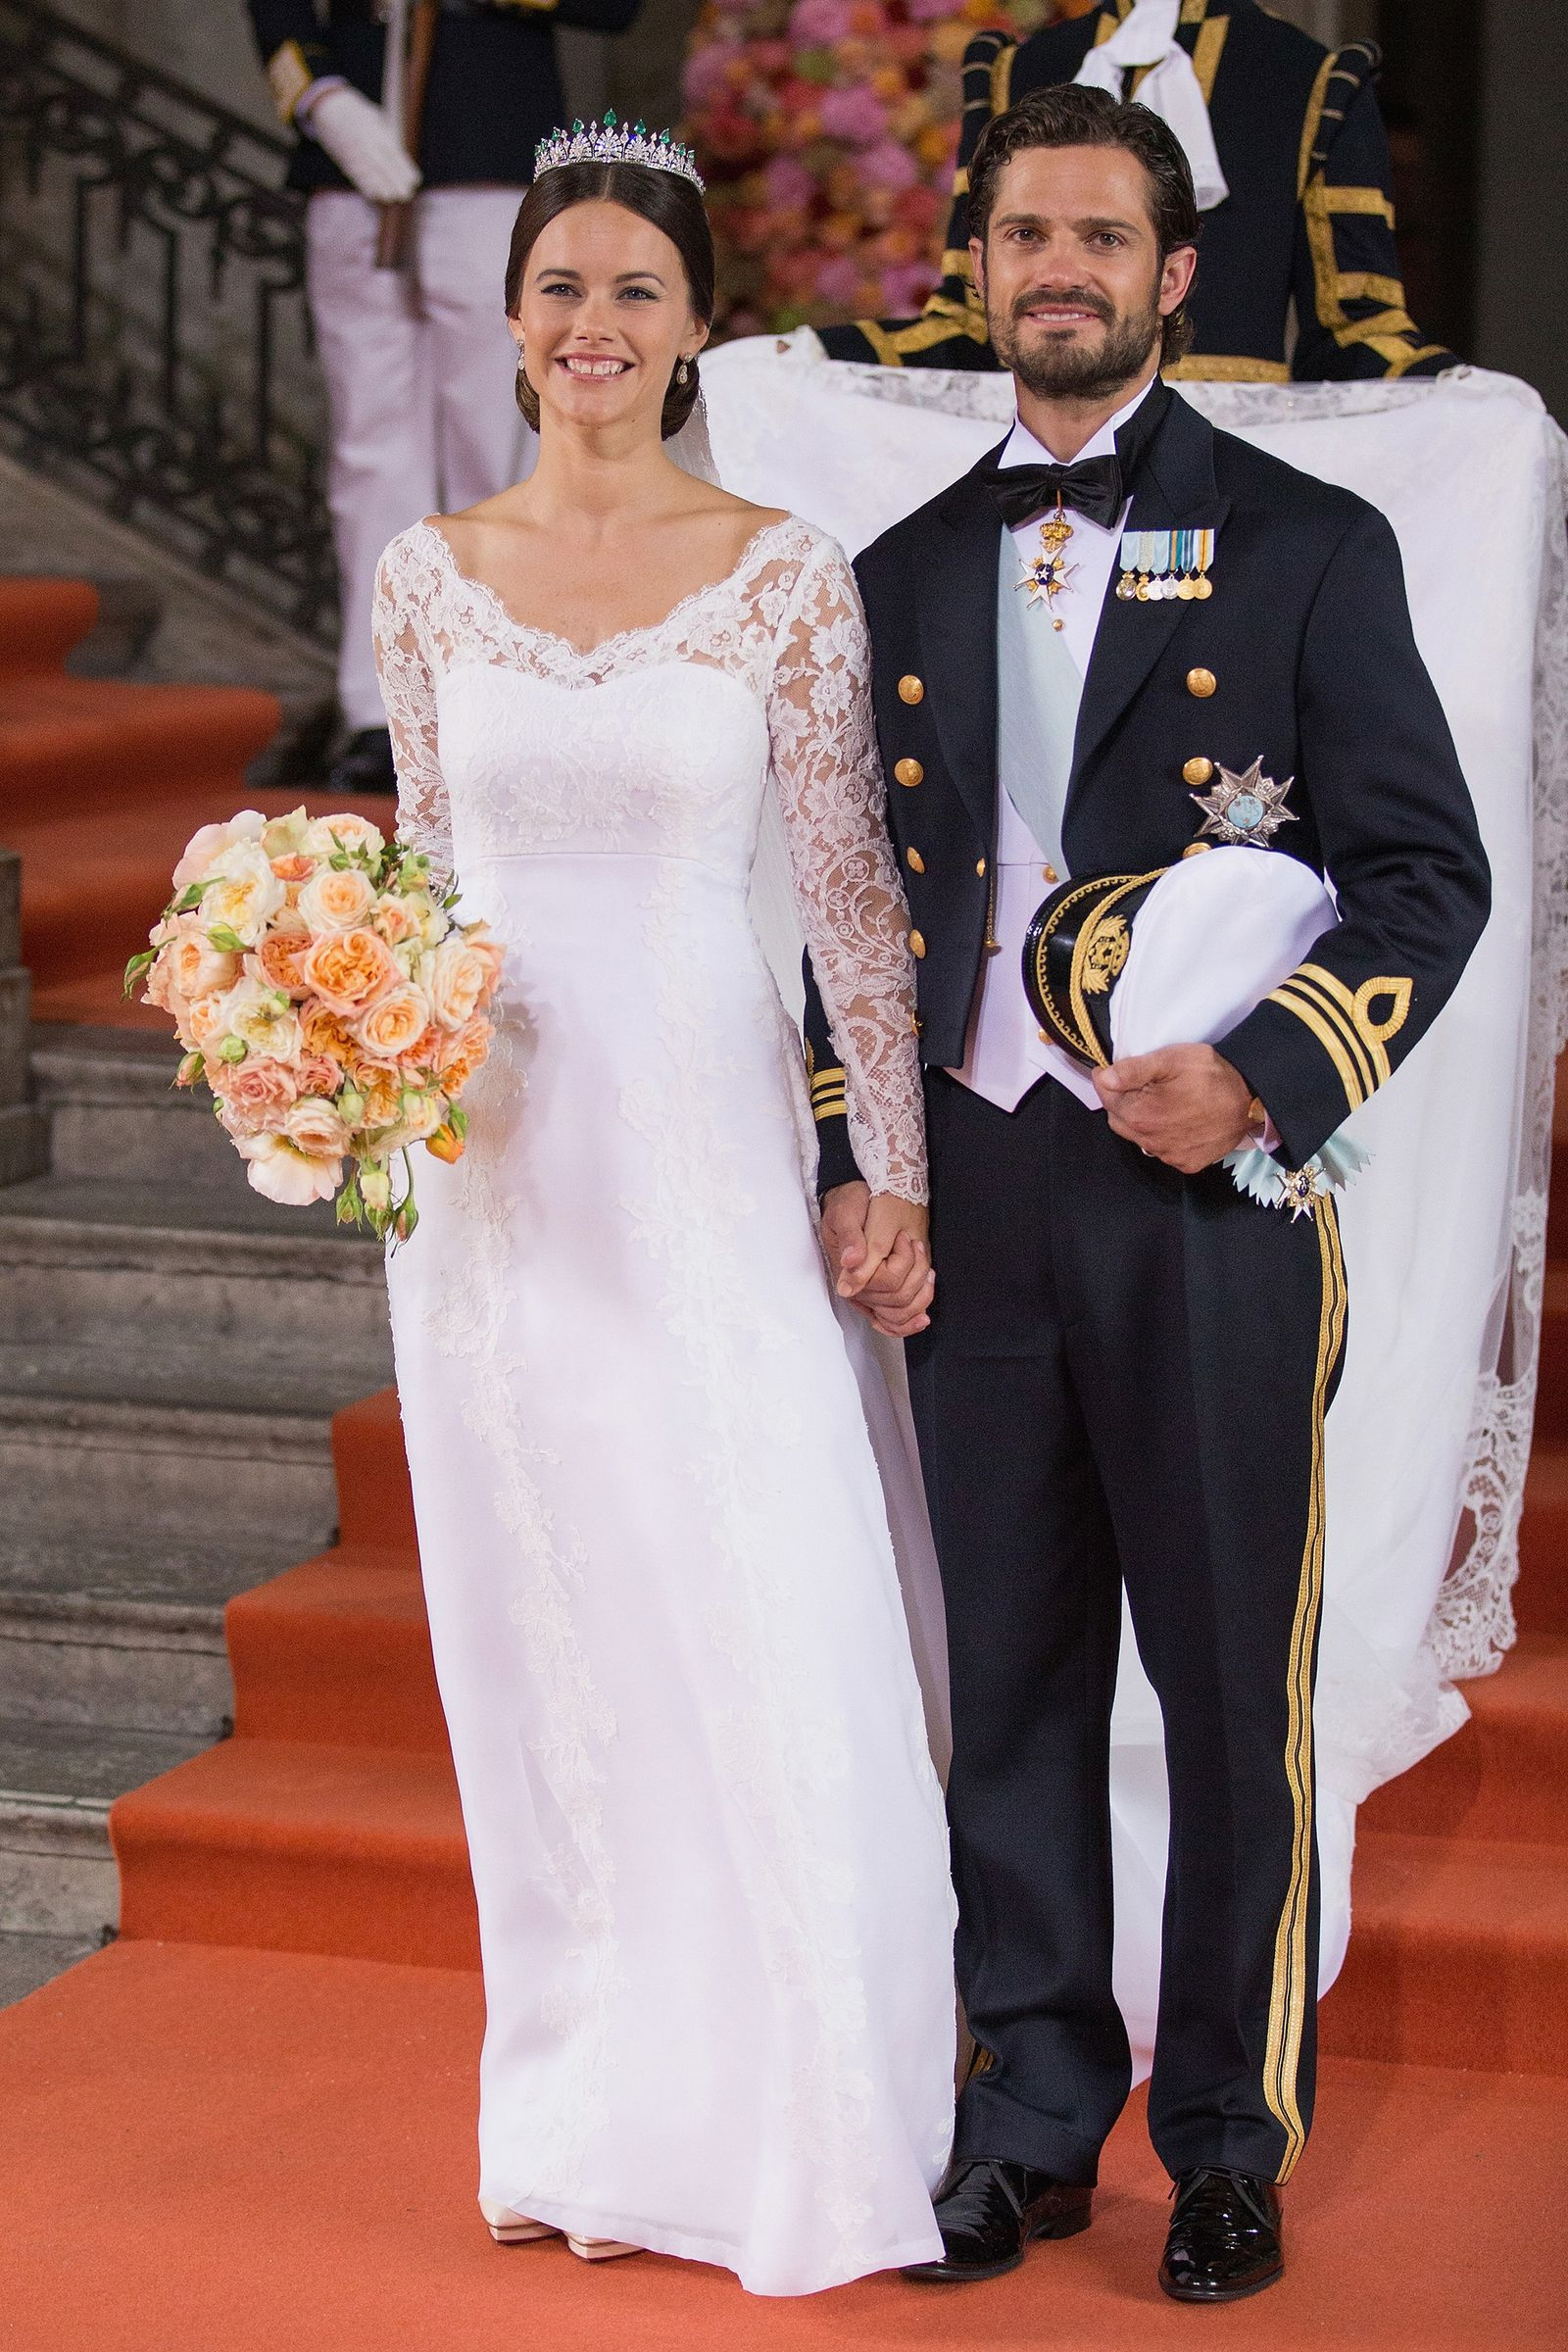 The Most Iconic Royal Wedding Gowns Of All Time In 2020 Royal Wedding Gowns Royal Wedding Dress Celebrity Wedding Dresses [ 2400 x 1600 Pixel ]